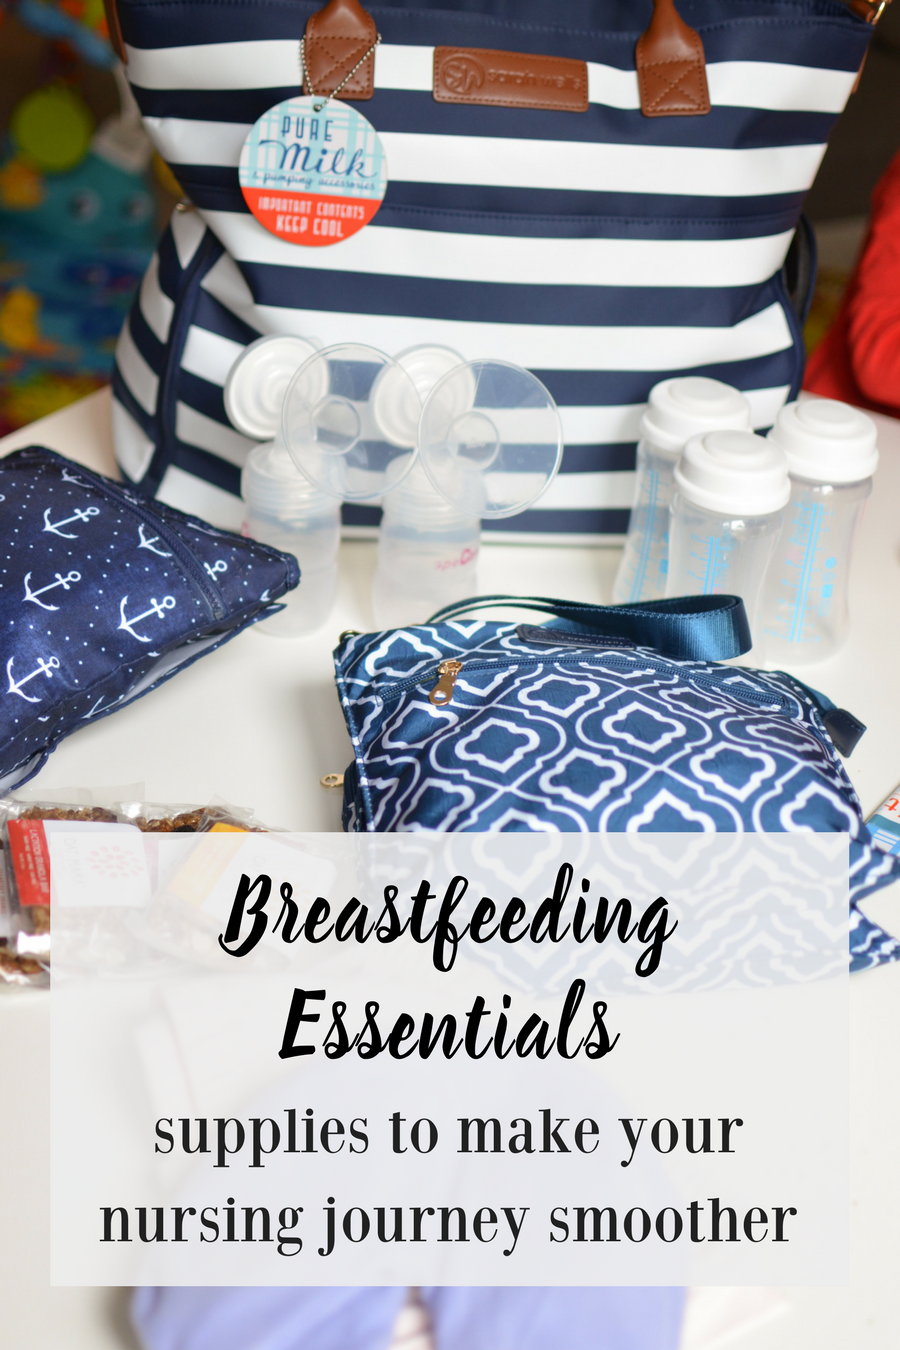 Planning to breastfeed? Here are the top breastfeeding supplies to help you on your nursing journey!